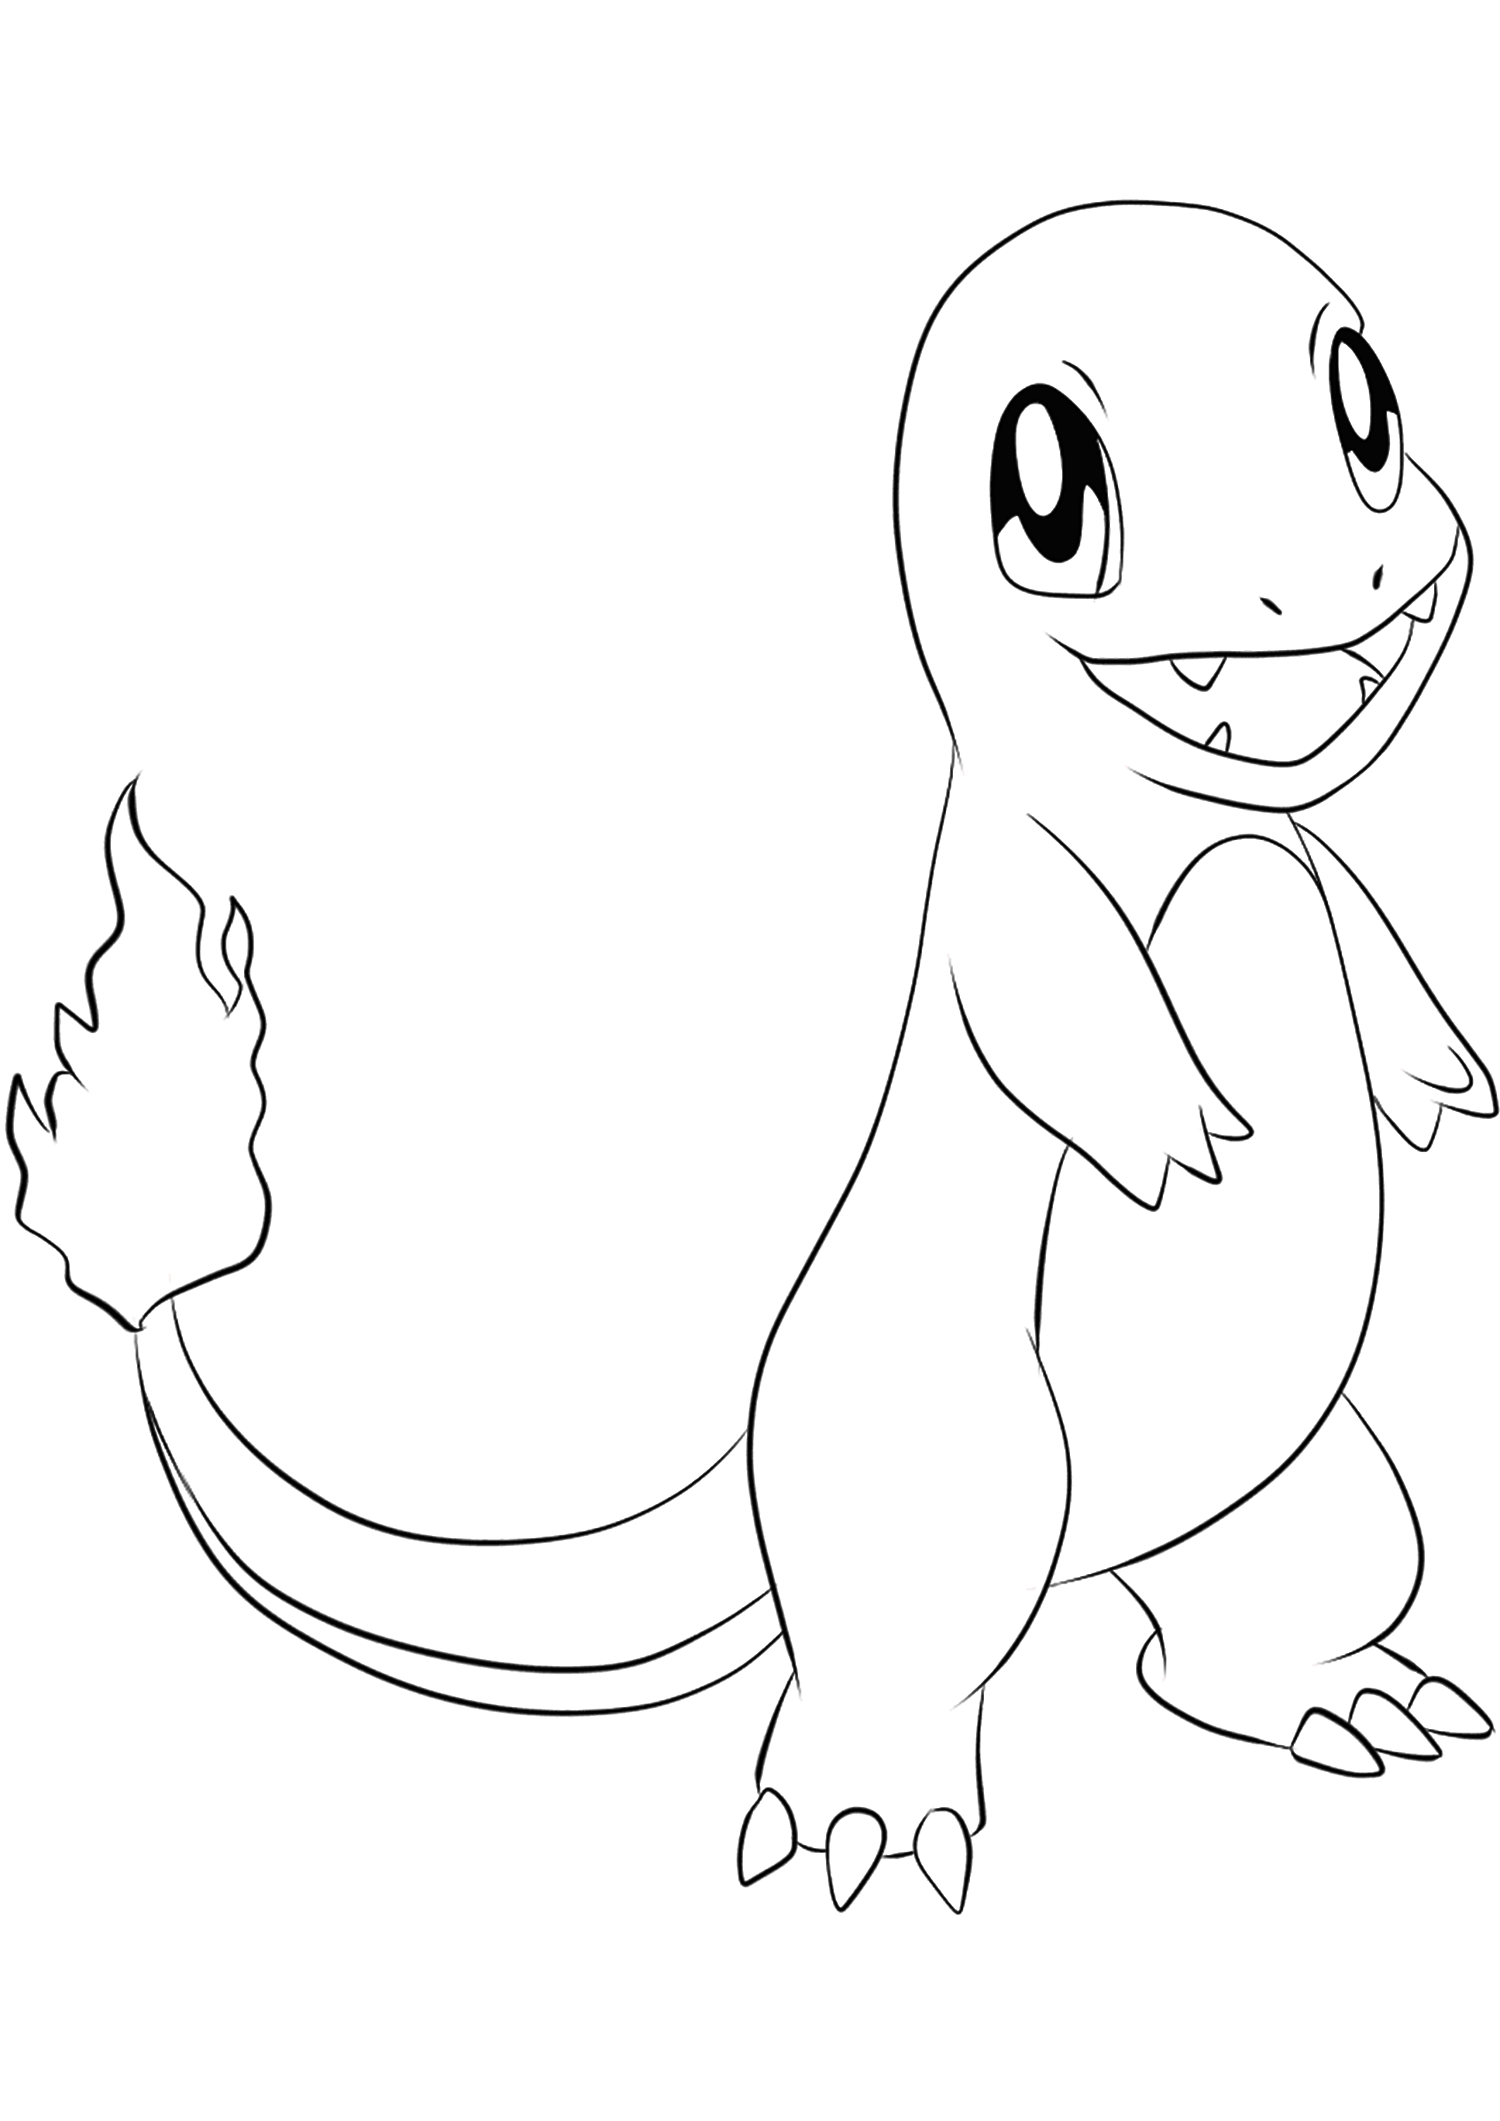 Charmander No.12 : Pokemon Generation I - All Pokemon coloring ...